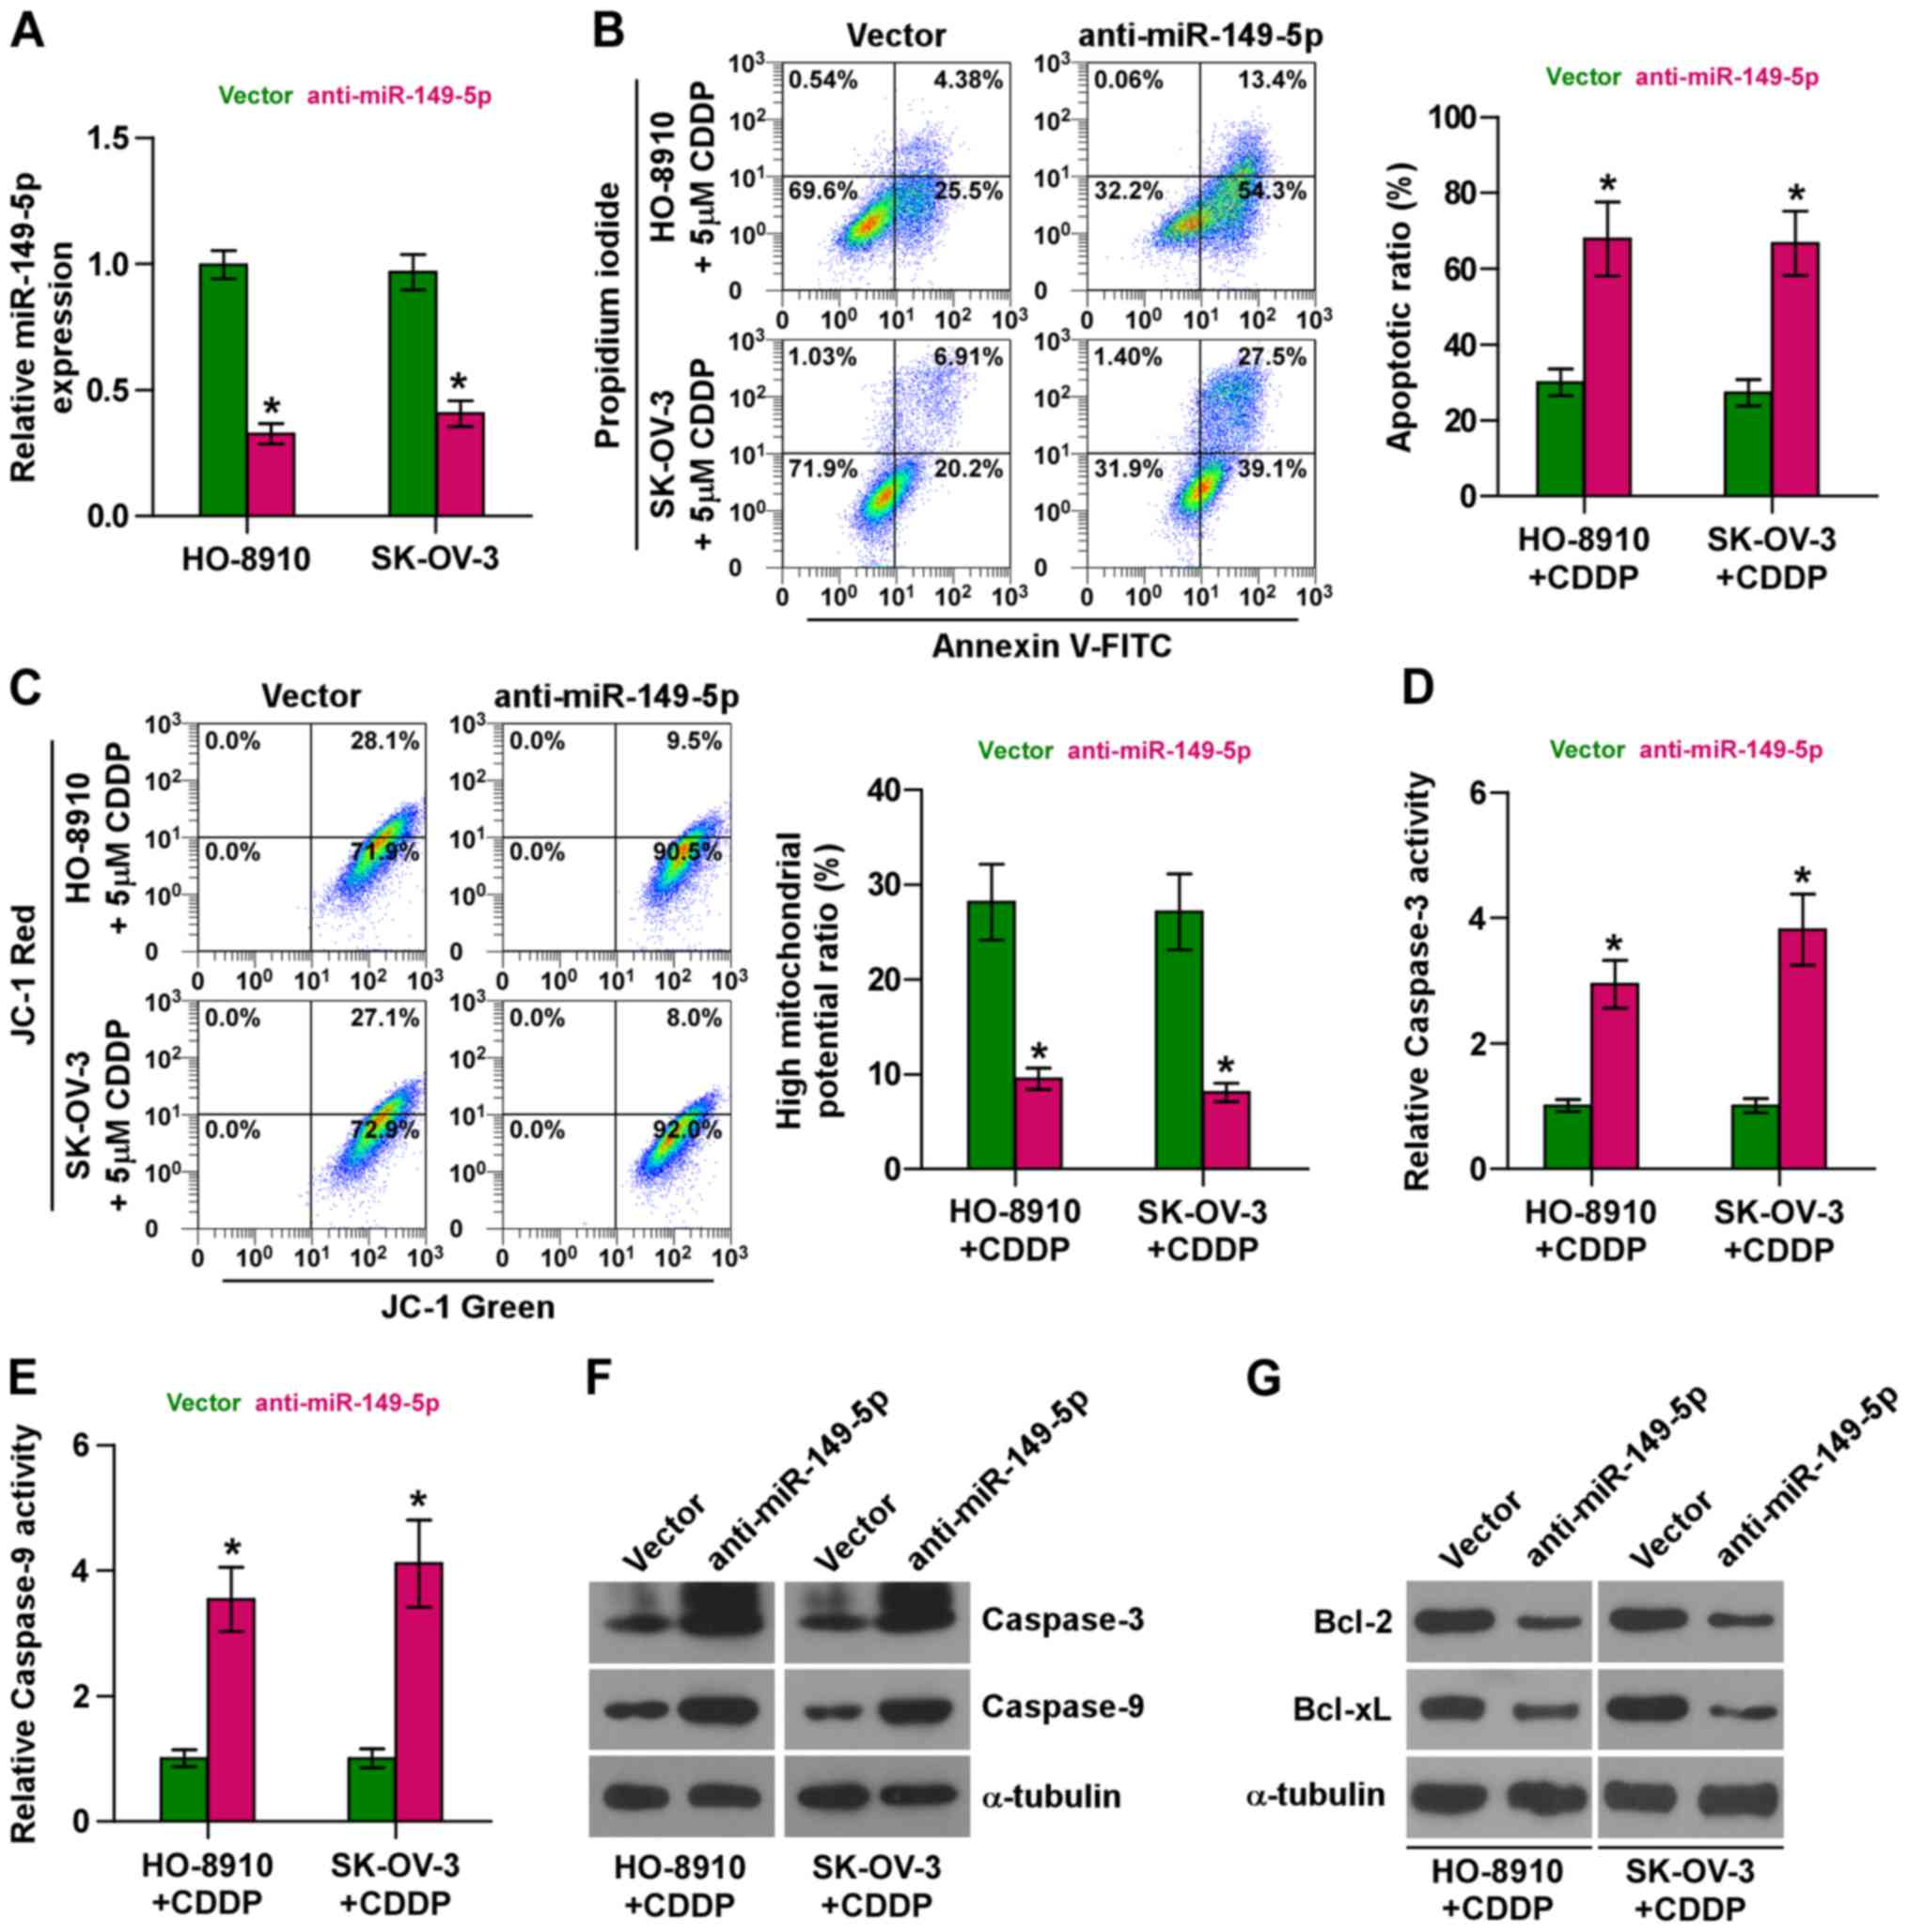 Mir 149 5p Promotes Chemotherapeutic Resistance In Ovarian Cancer Via The Inactivation Of The Hippo Signaling Pathway